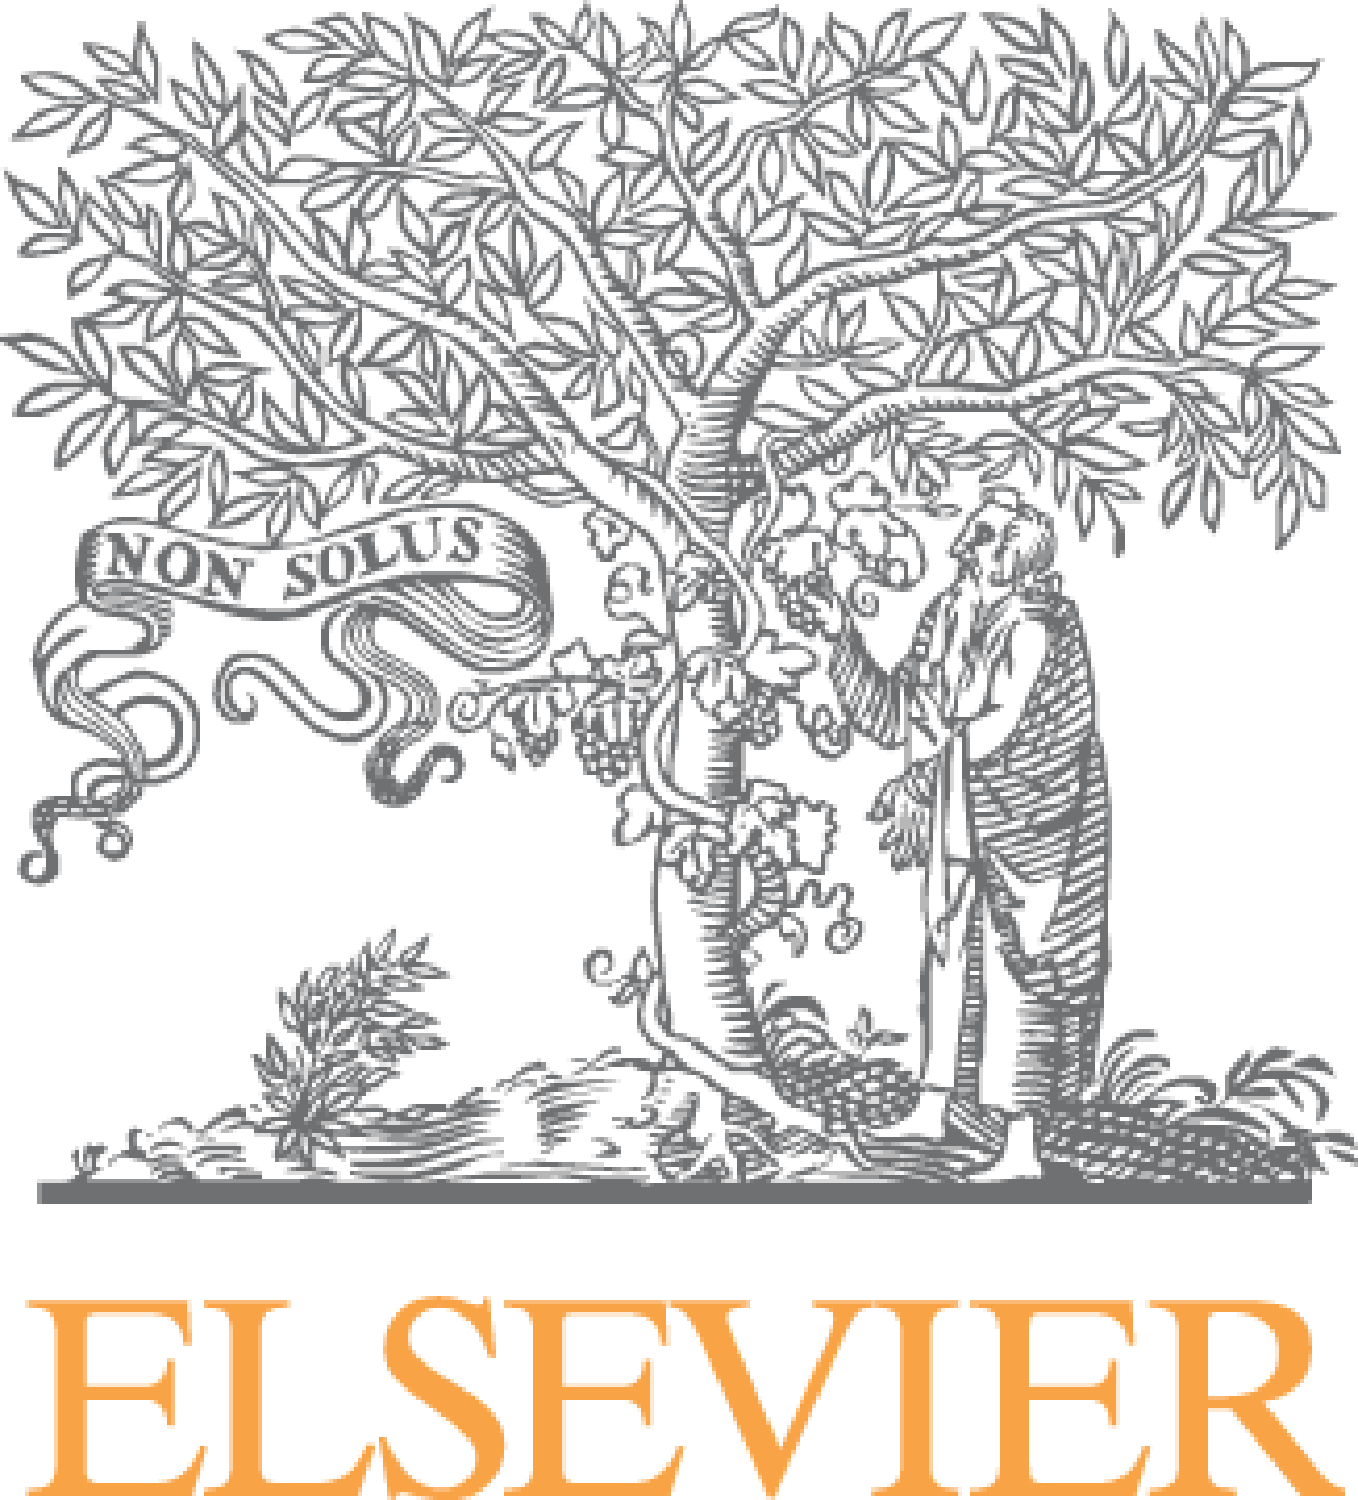 Elsevierlogo360 300dpi